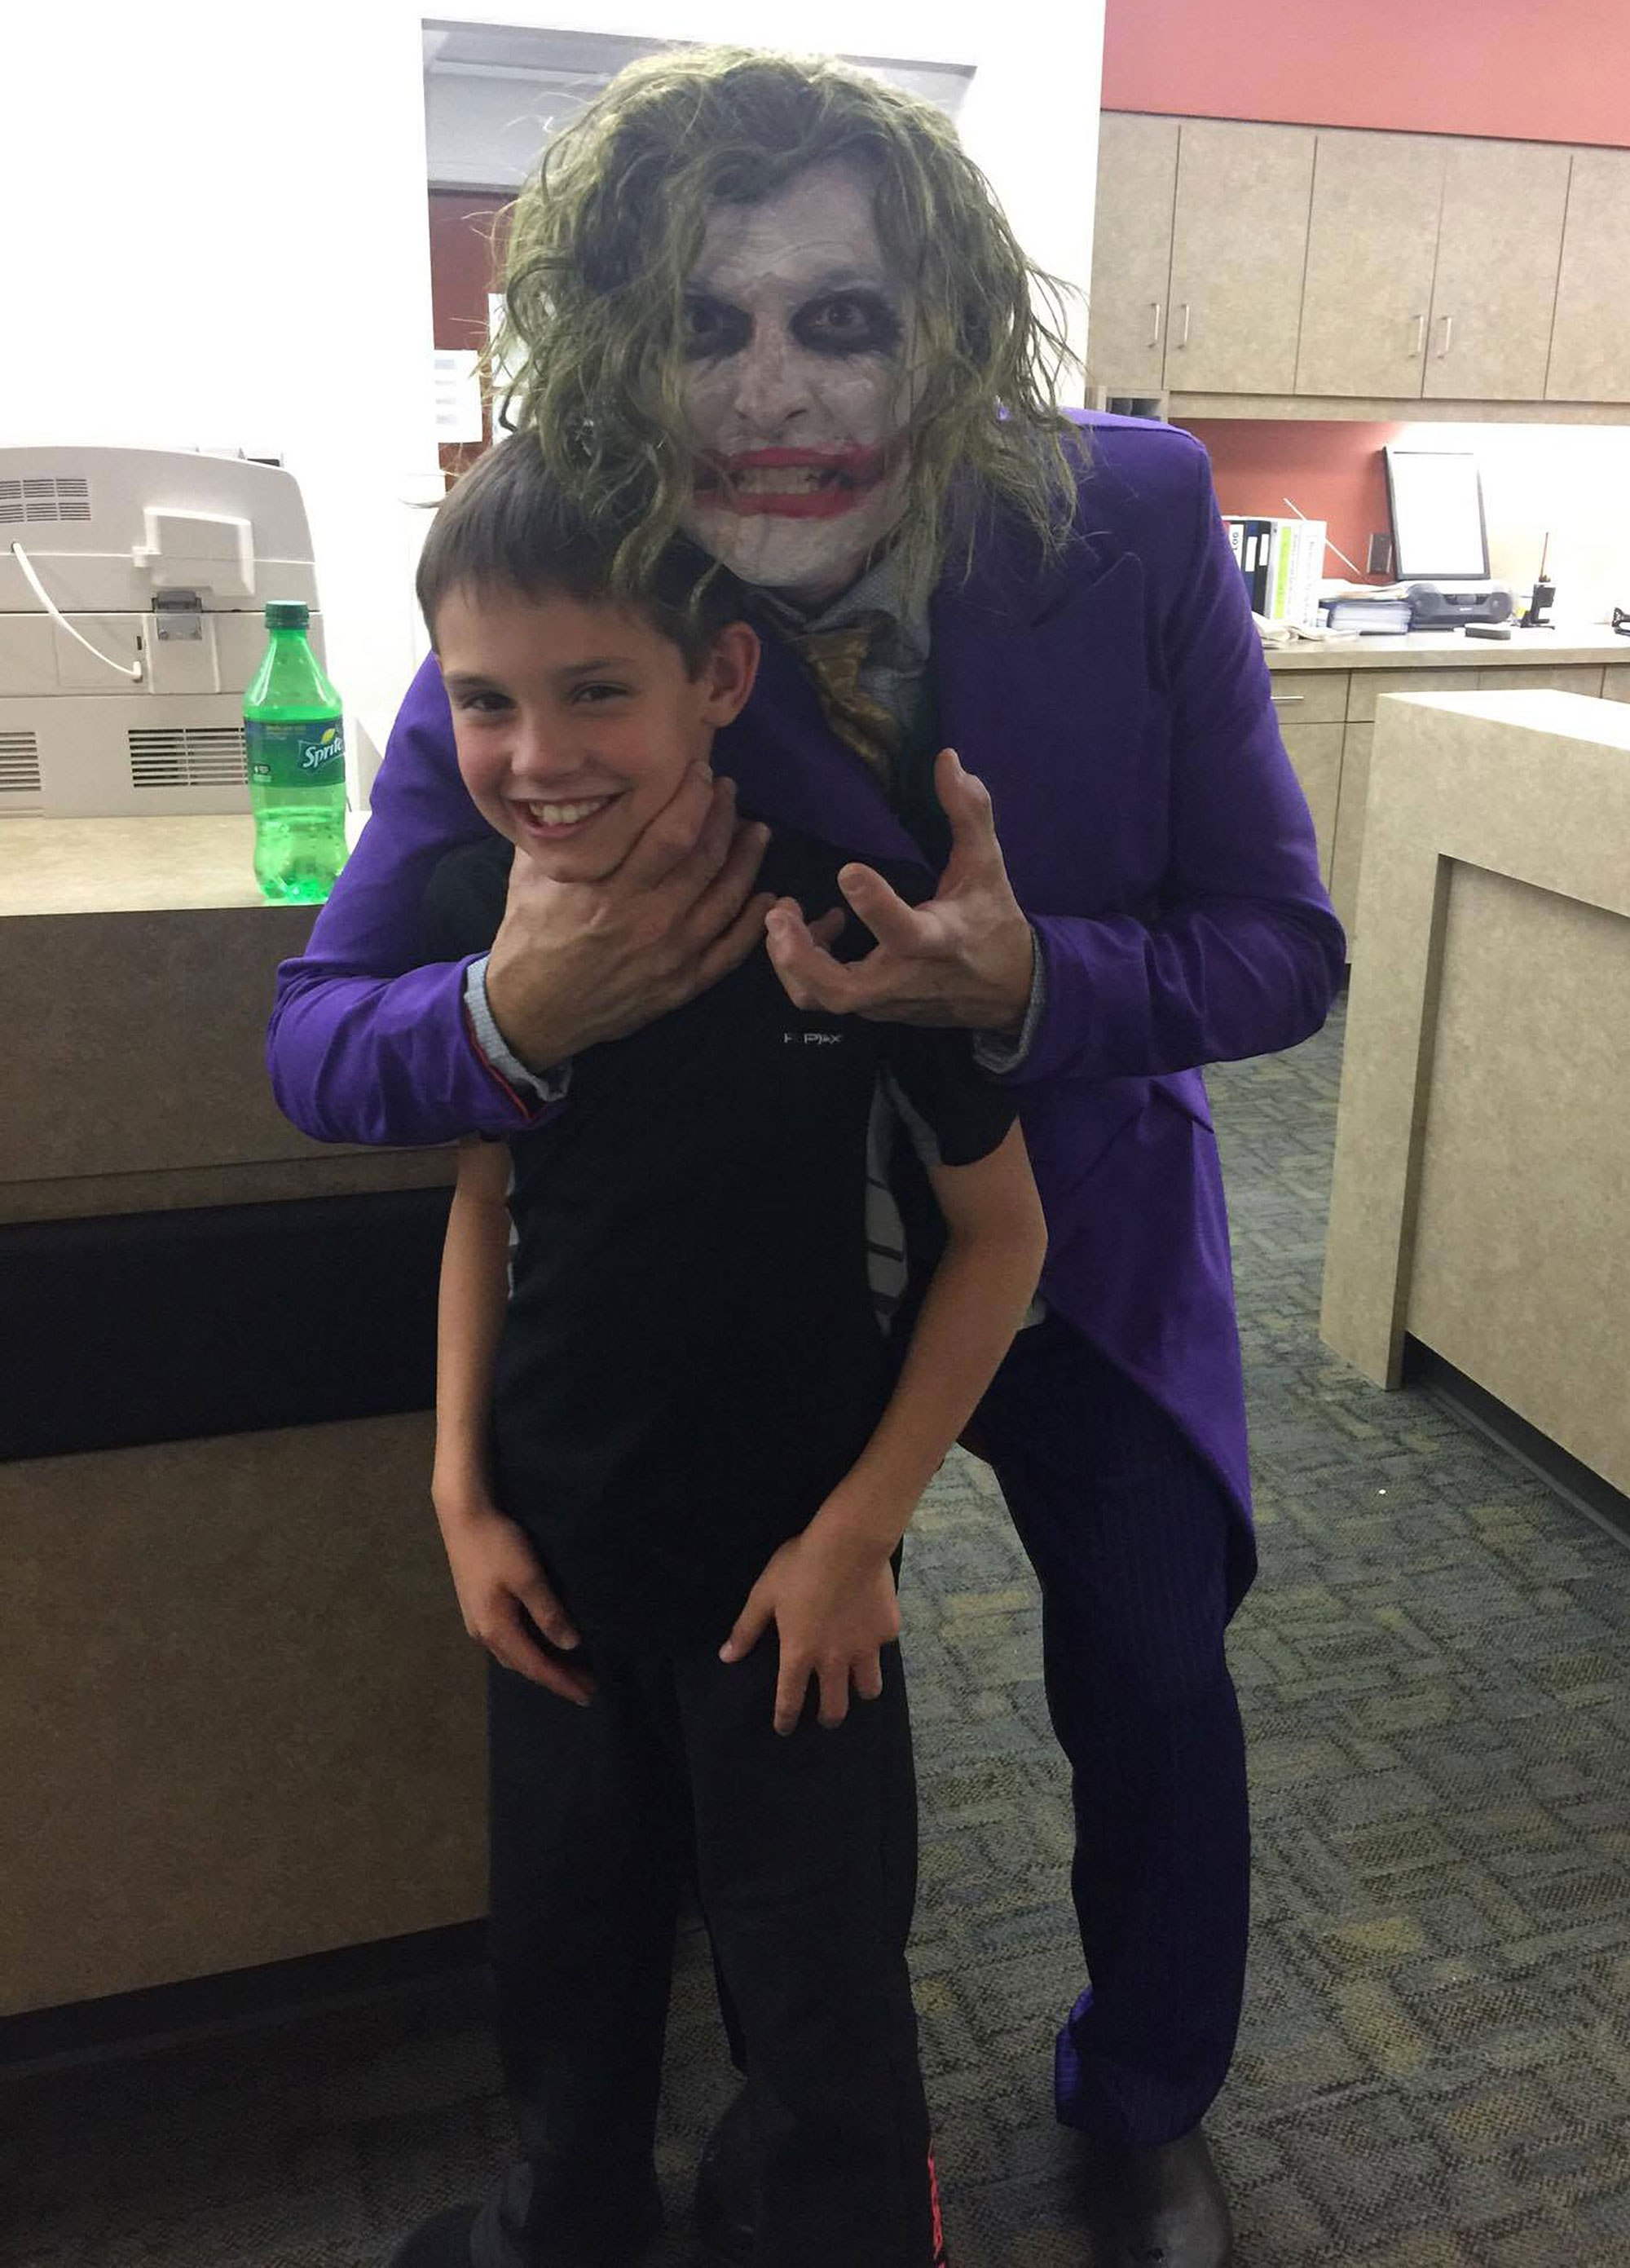 Dr. Locus dressed as The Joker